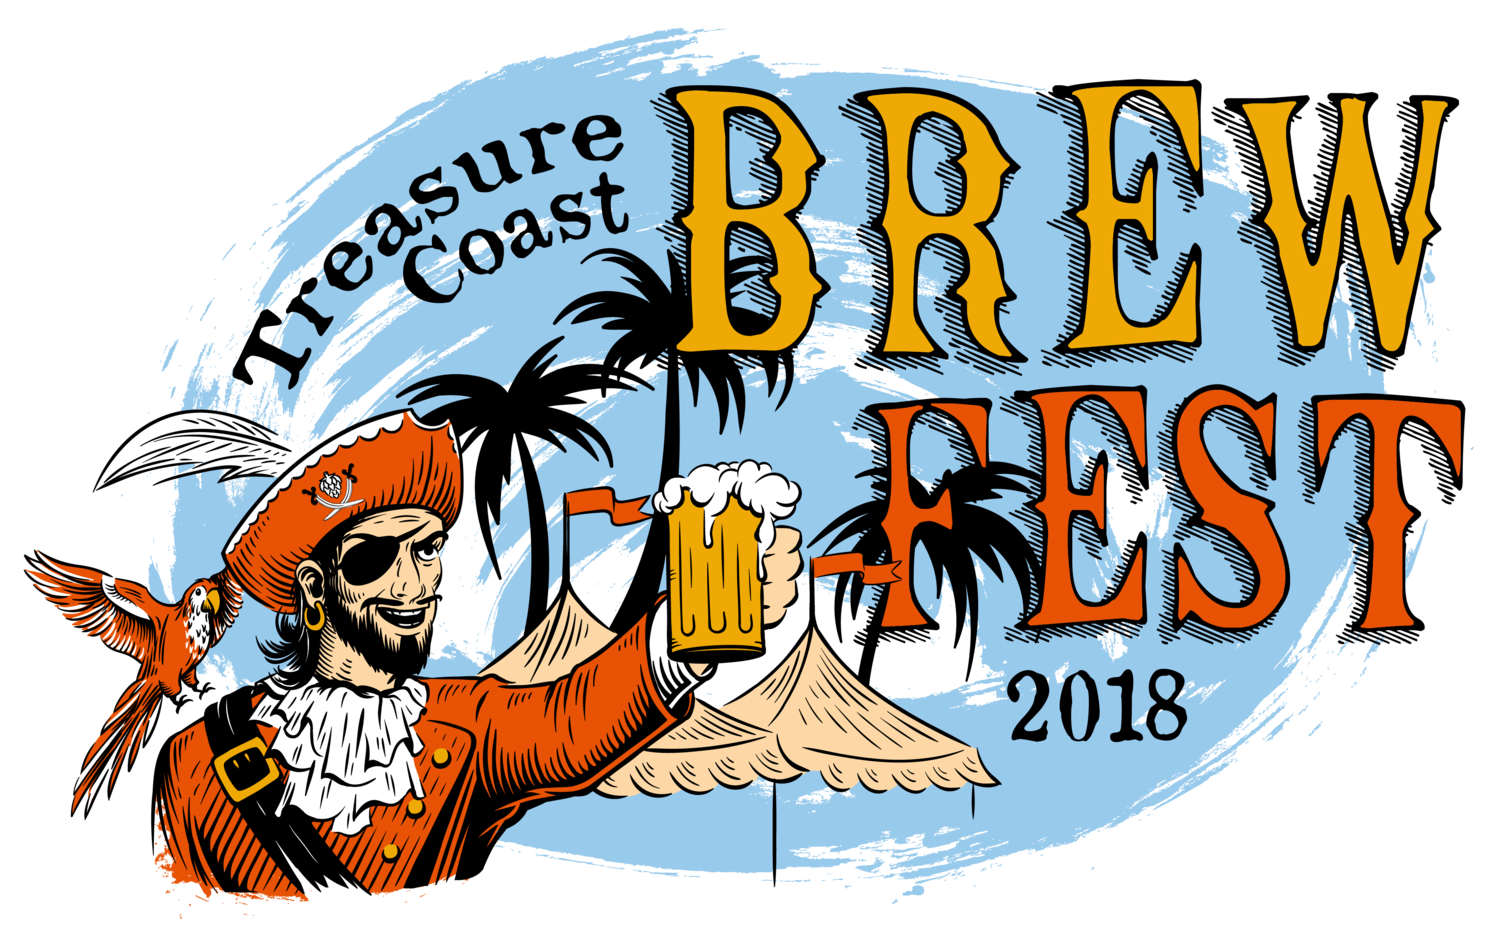 Treasure Coast Brew Fest